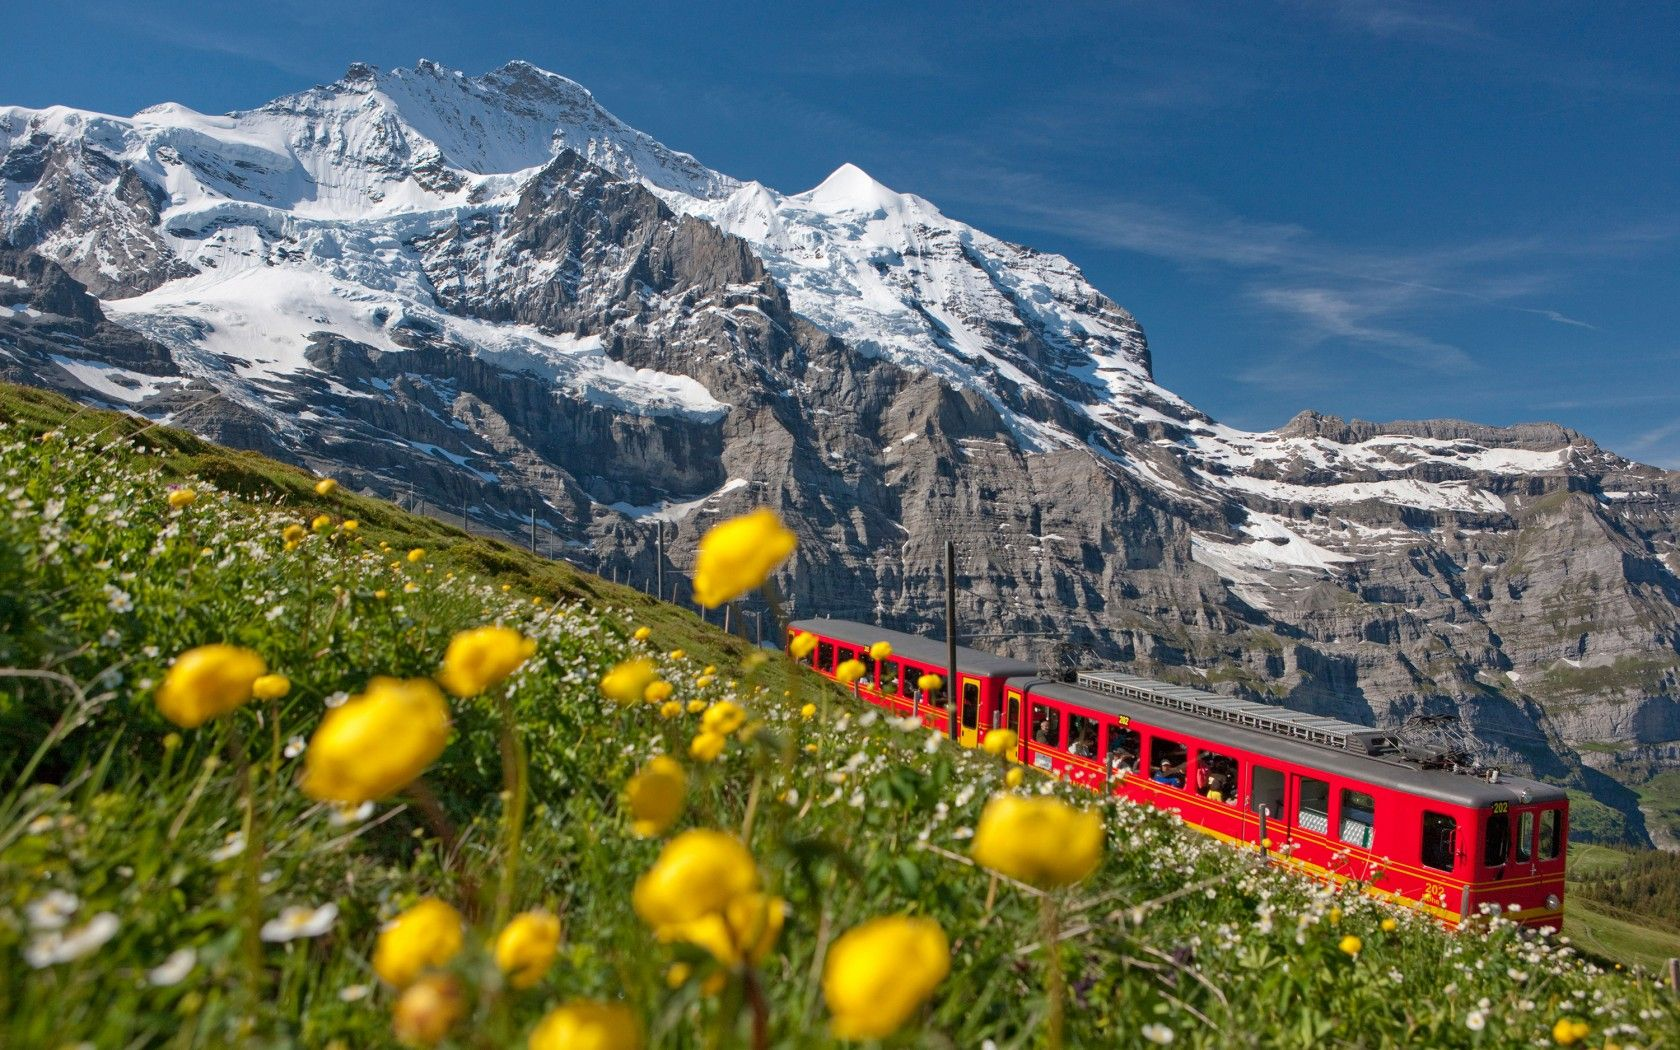 Train in the Swiss Mountains